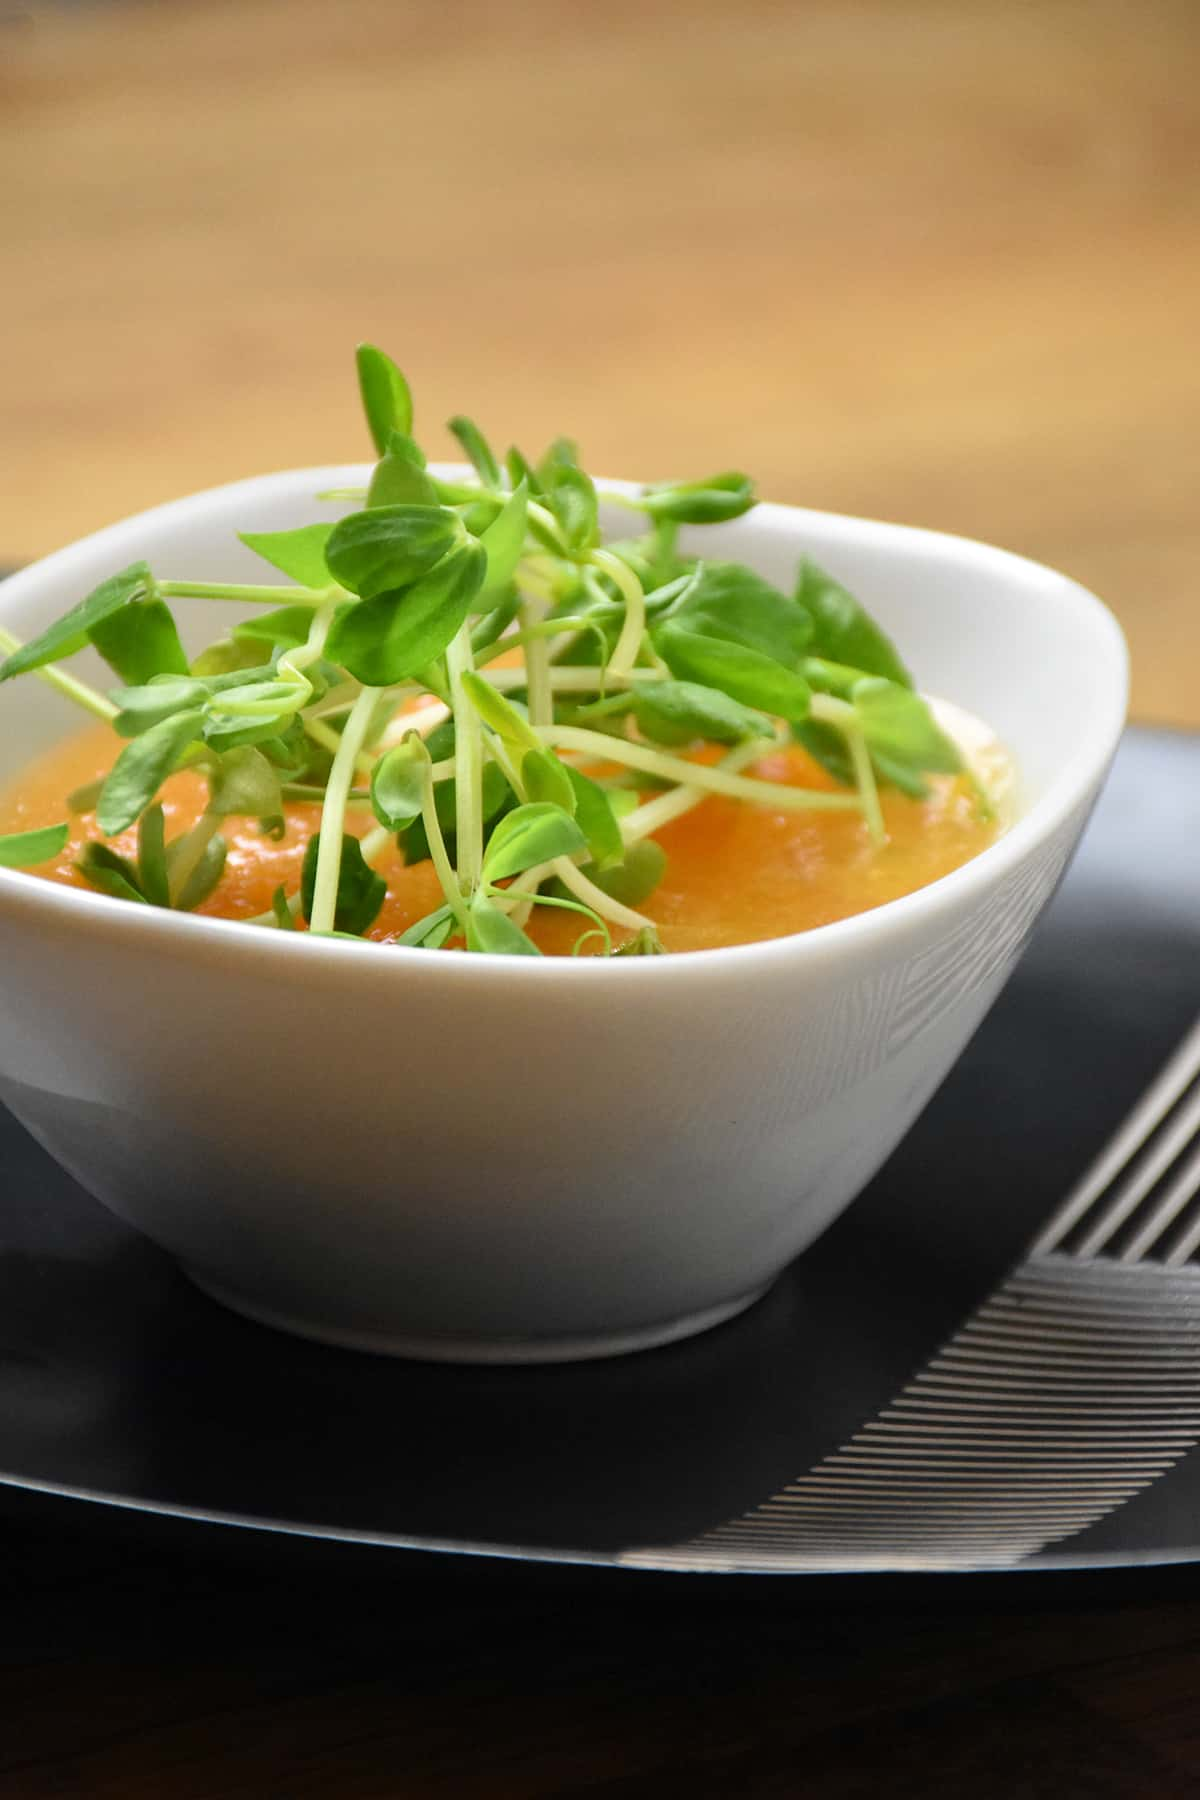 ... Chilled Cantaloupe Soup with Pea Shoots recipe you can check out the